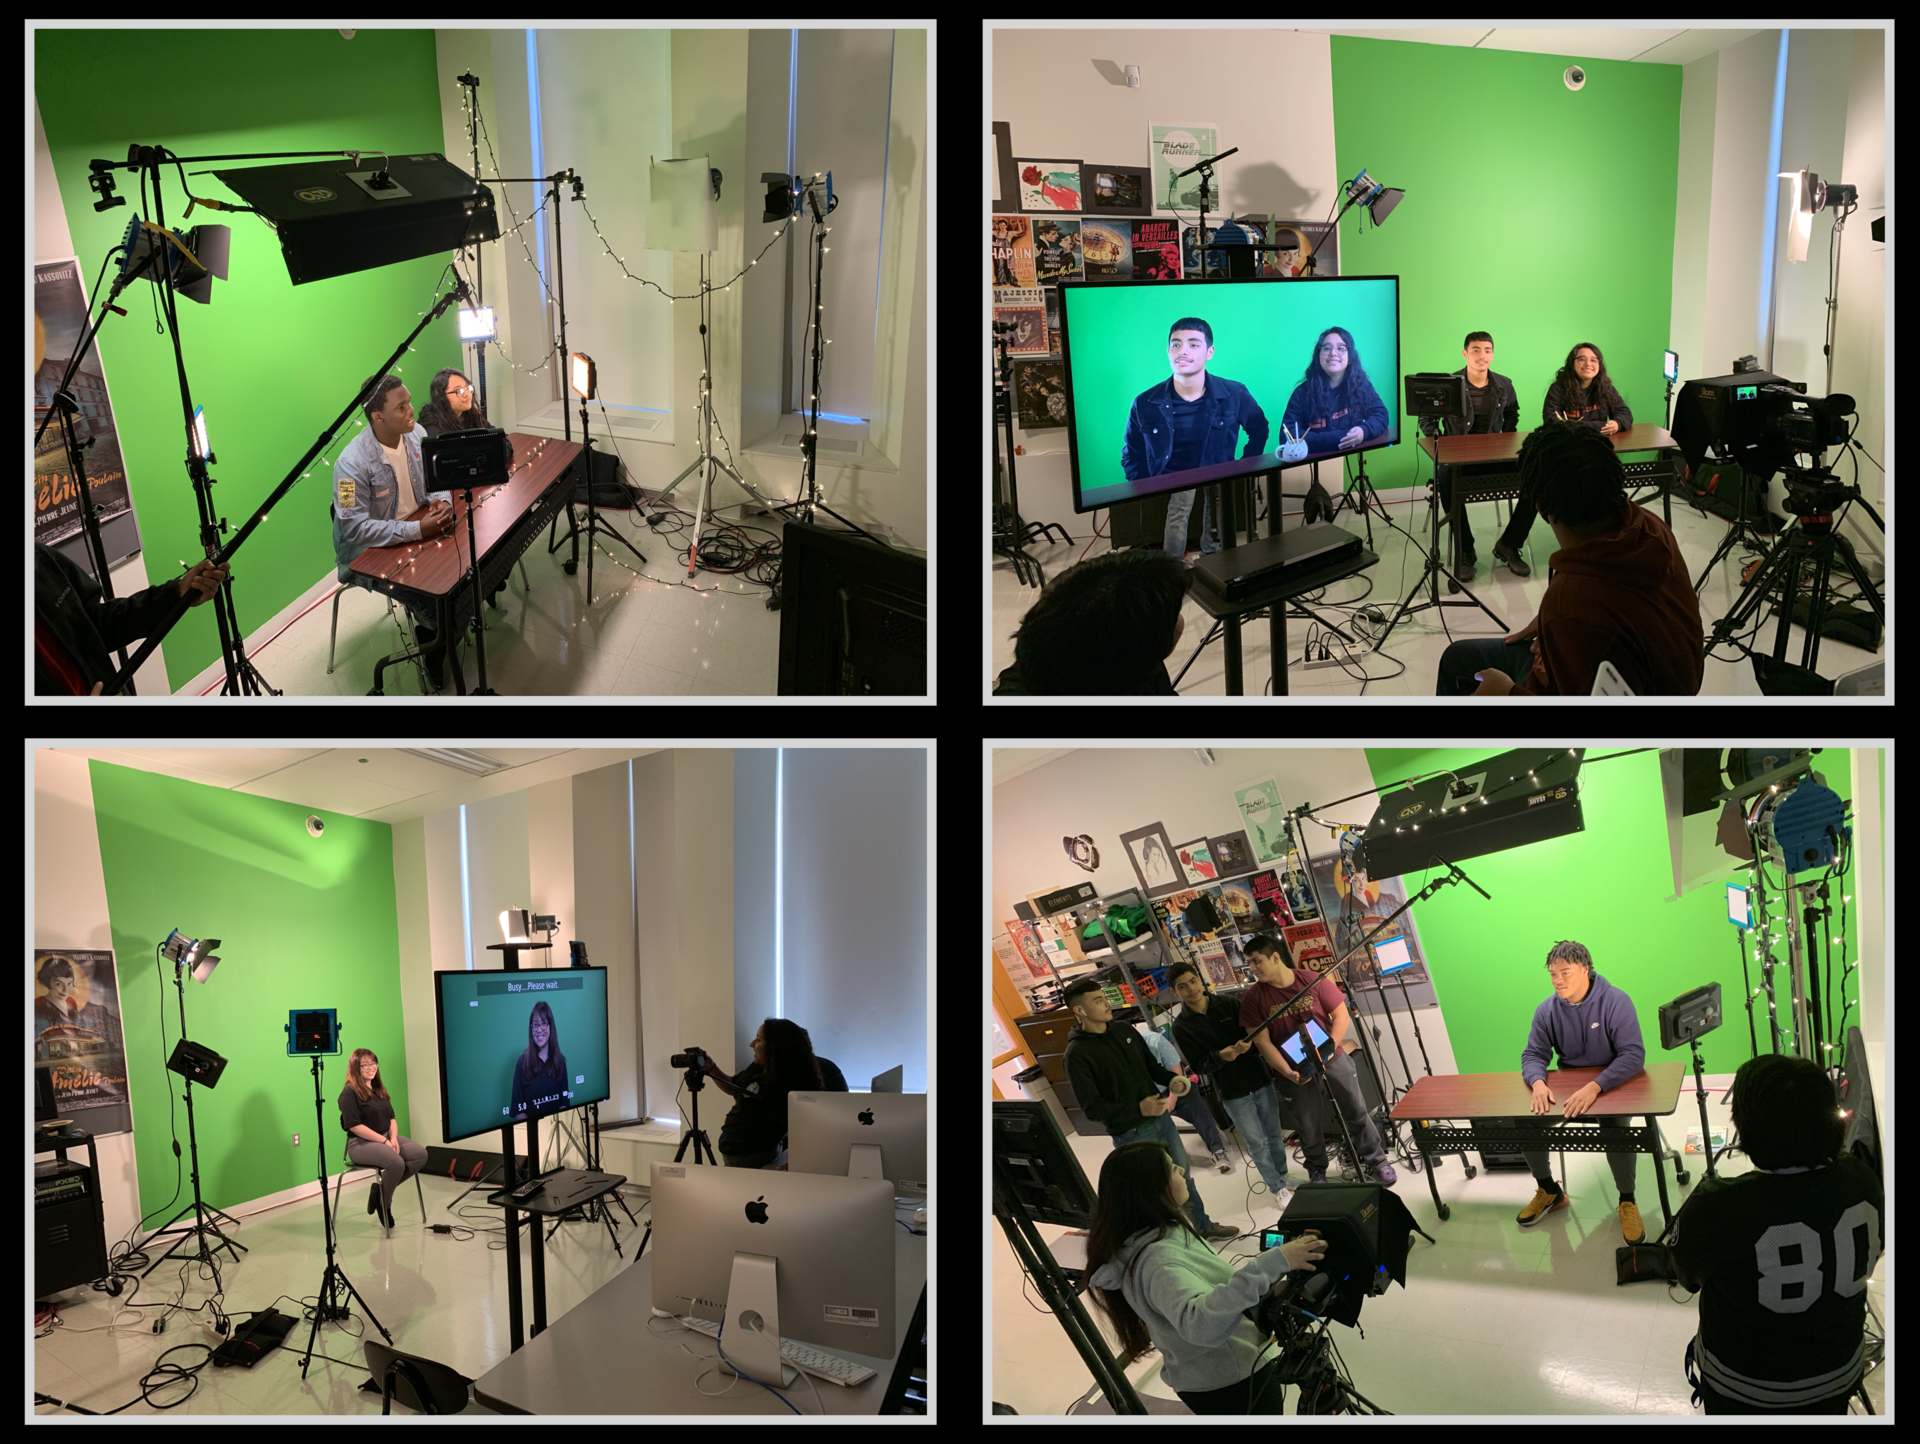 CP Broadcast students using the green screen